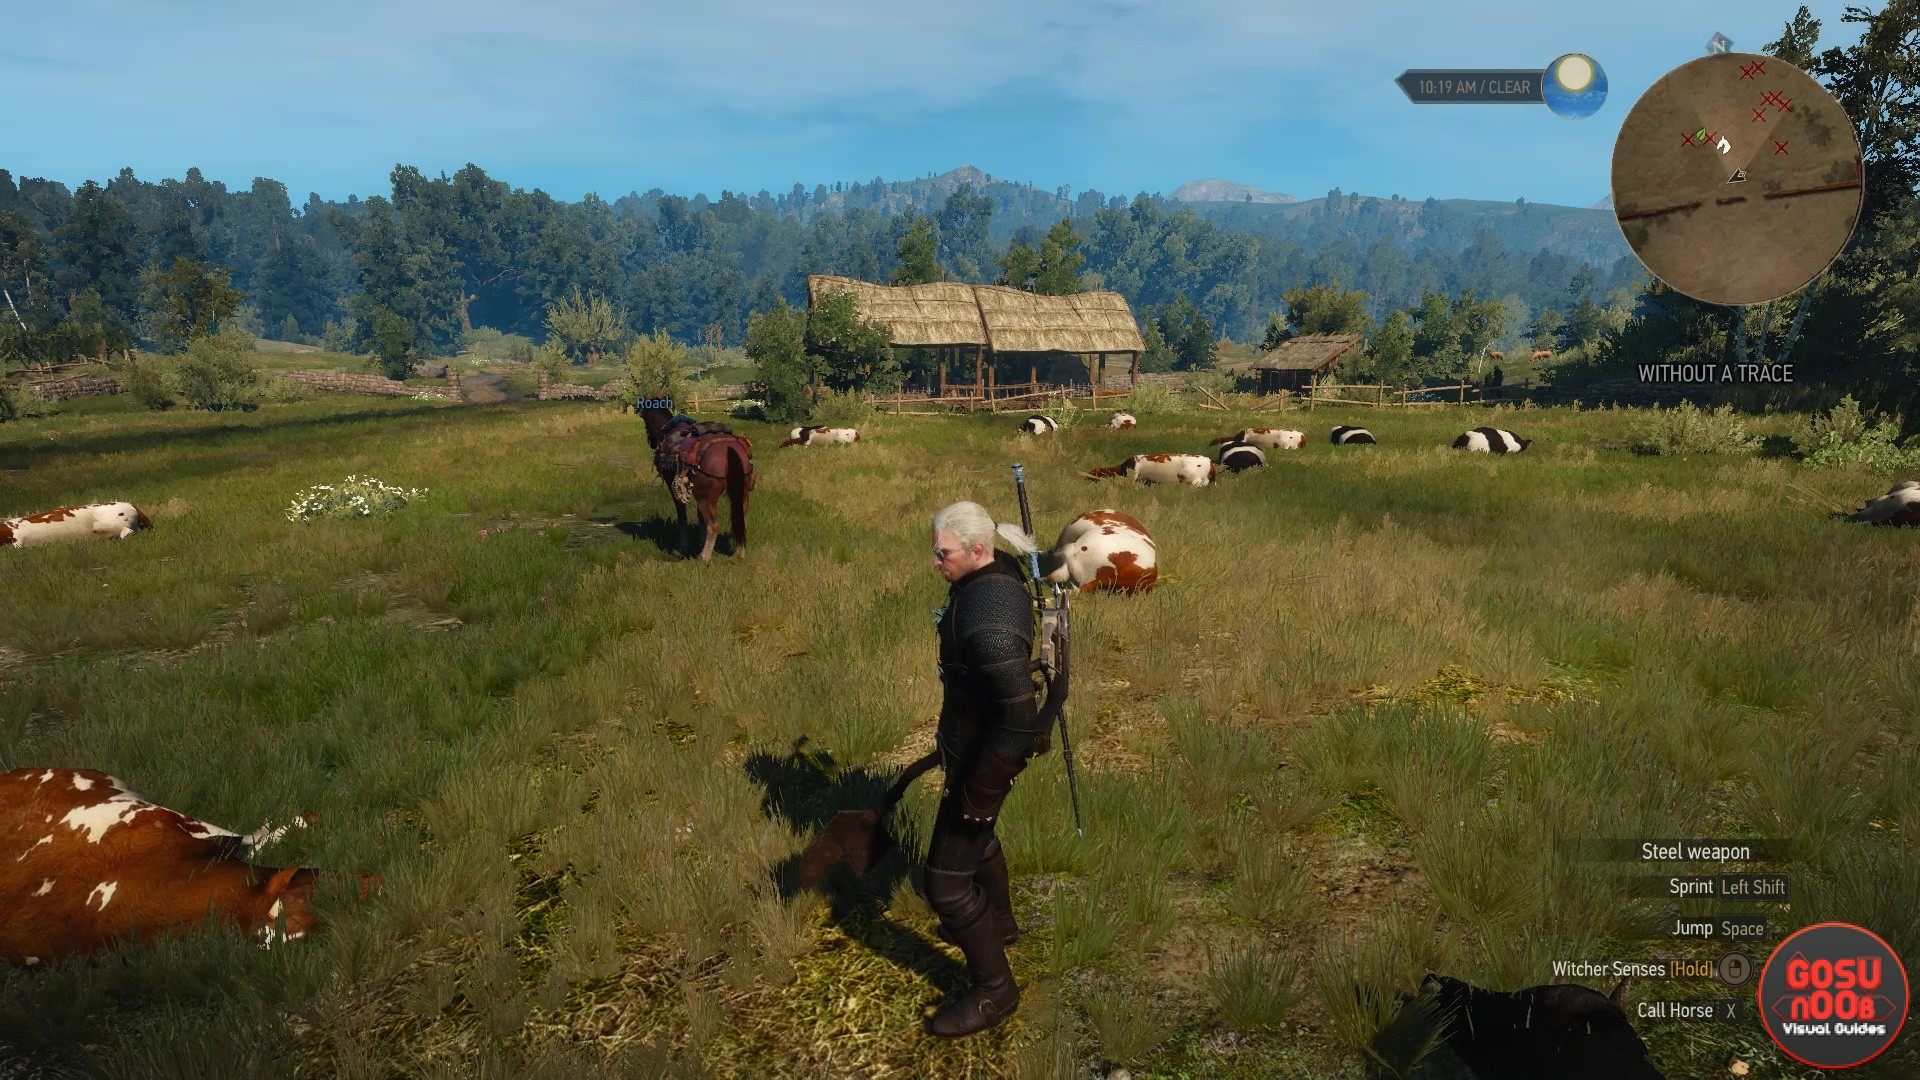 Cow Farm Witcher 3 - All About Cow Photos